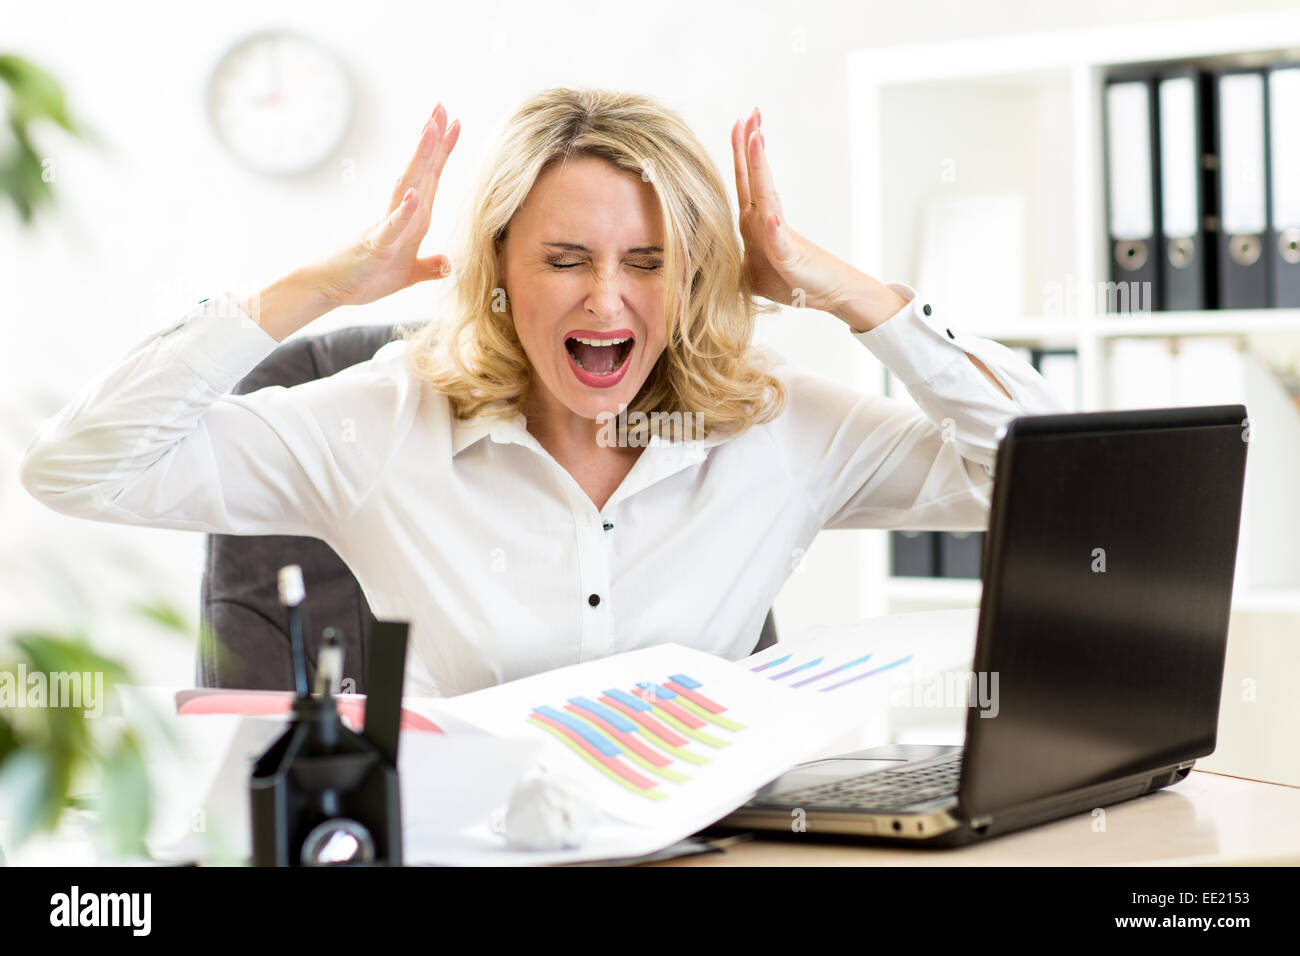 Stressed business woman screaming loudly working in office - Stock Image